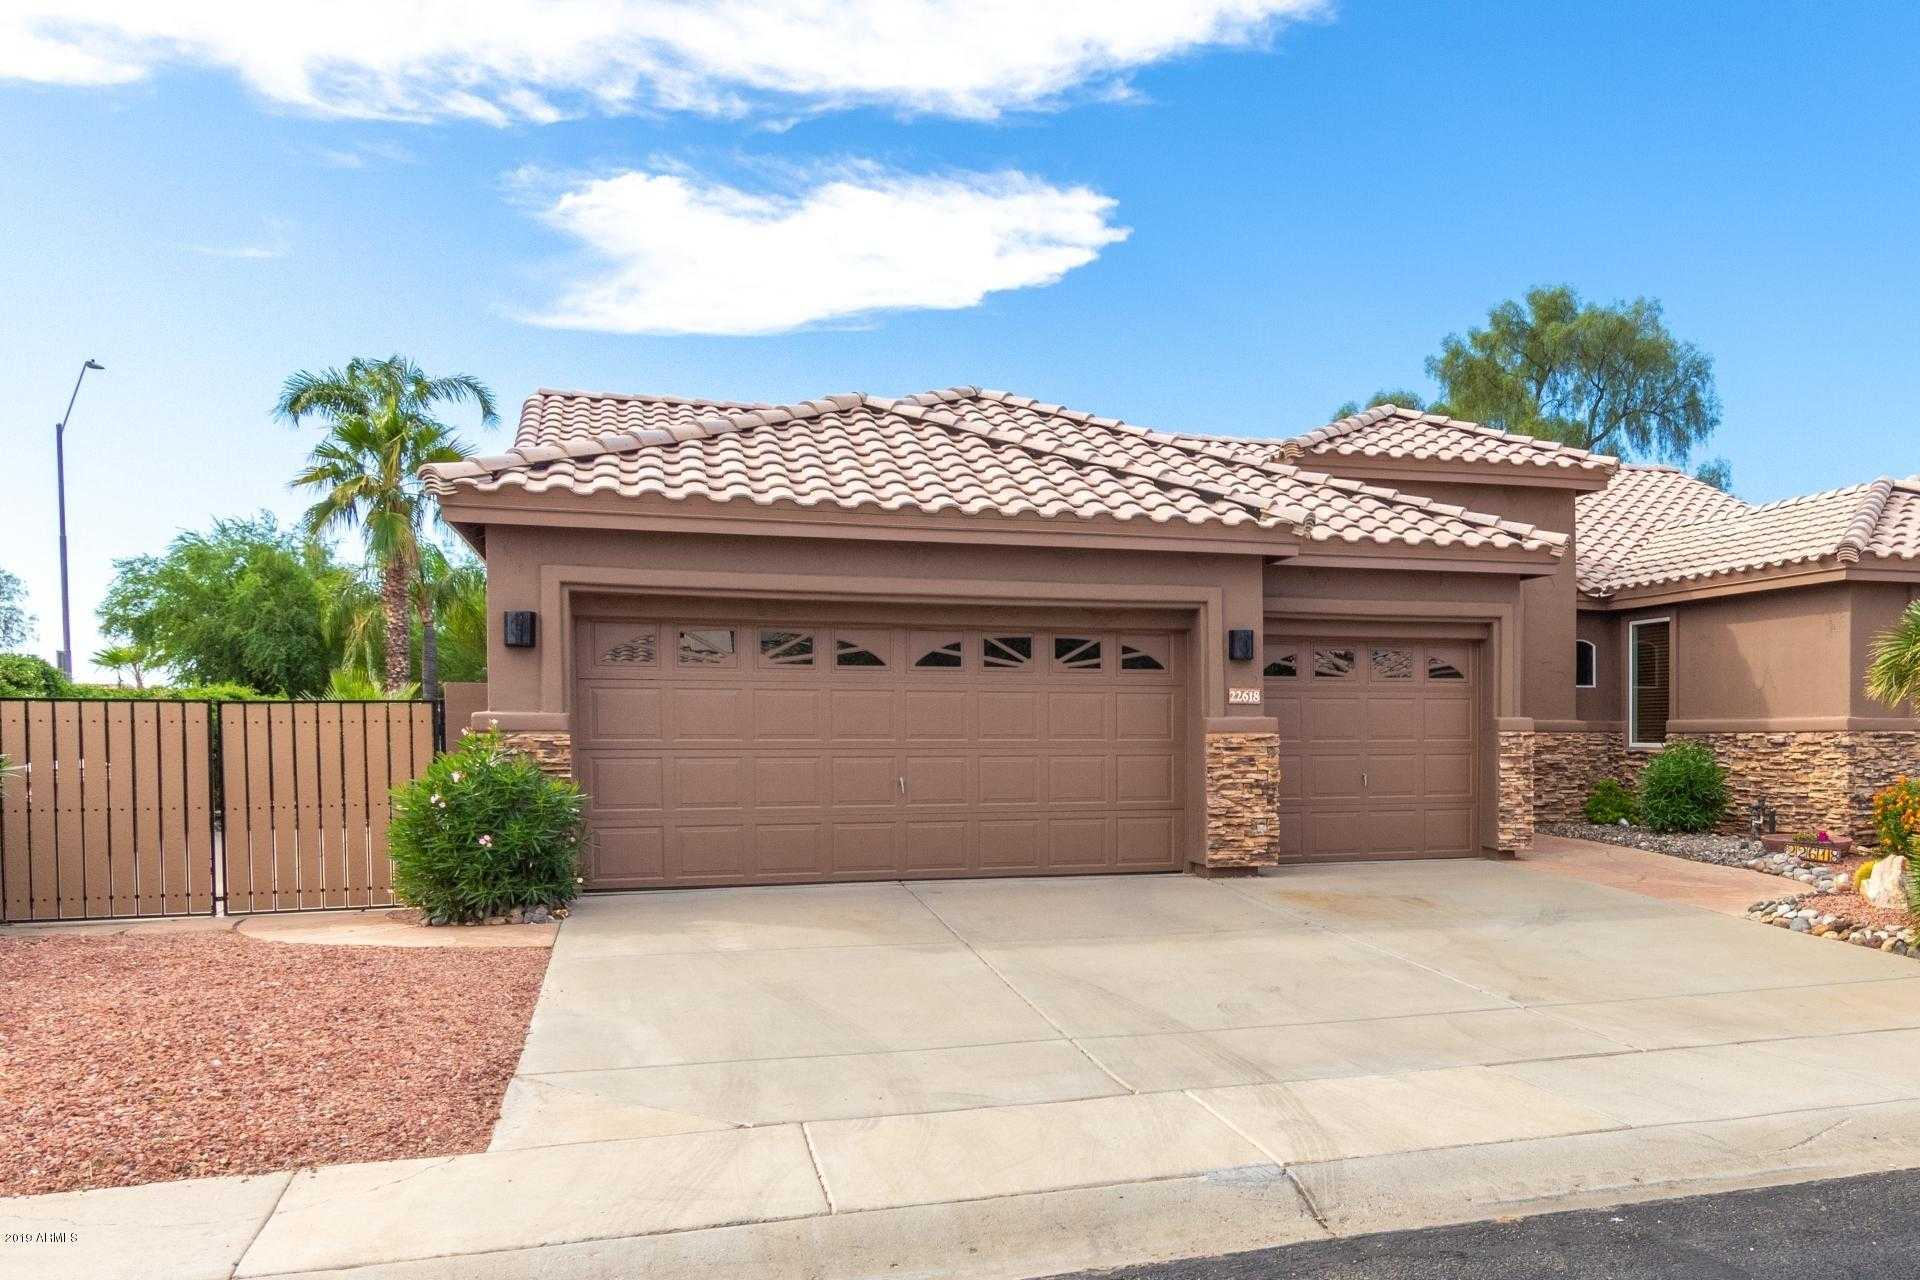 $425,000 - 4Br/2Ba - Home for Sale in Hillcrest Ranch Parcel I Lot1-136 Tr A-g, Glendale